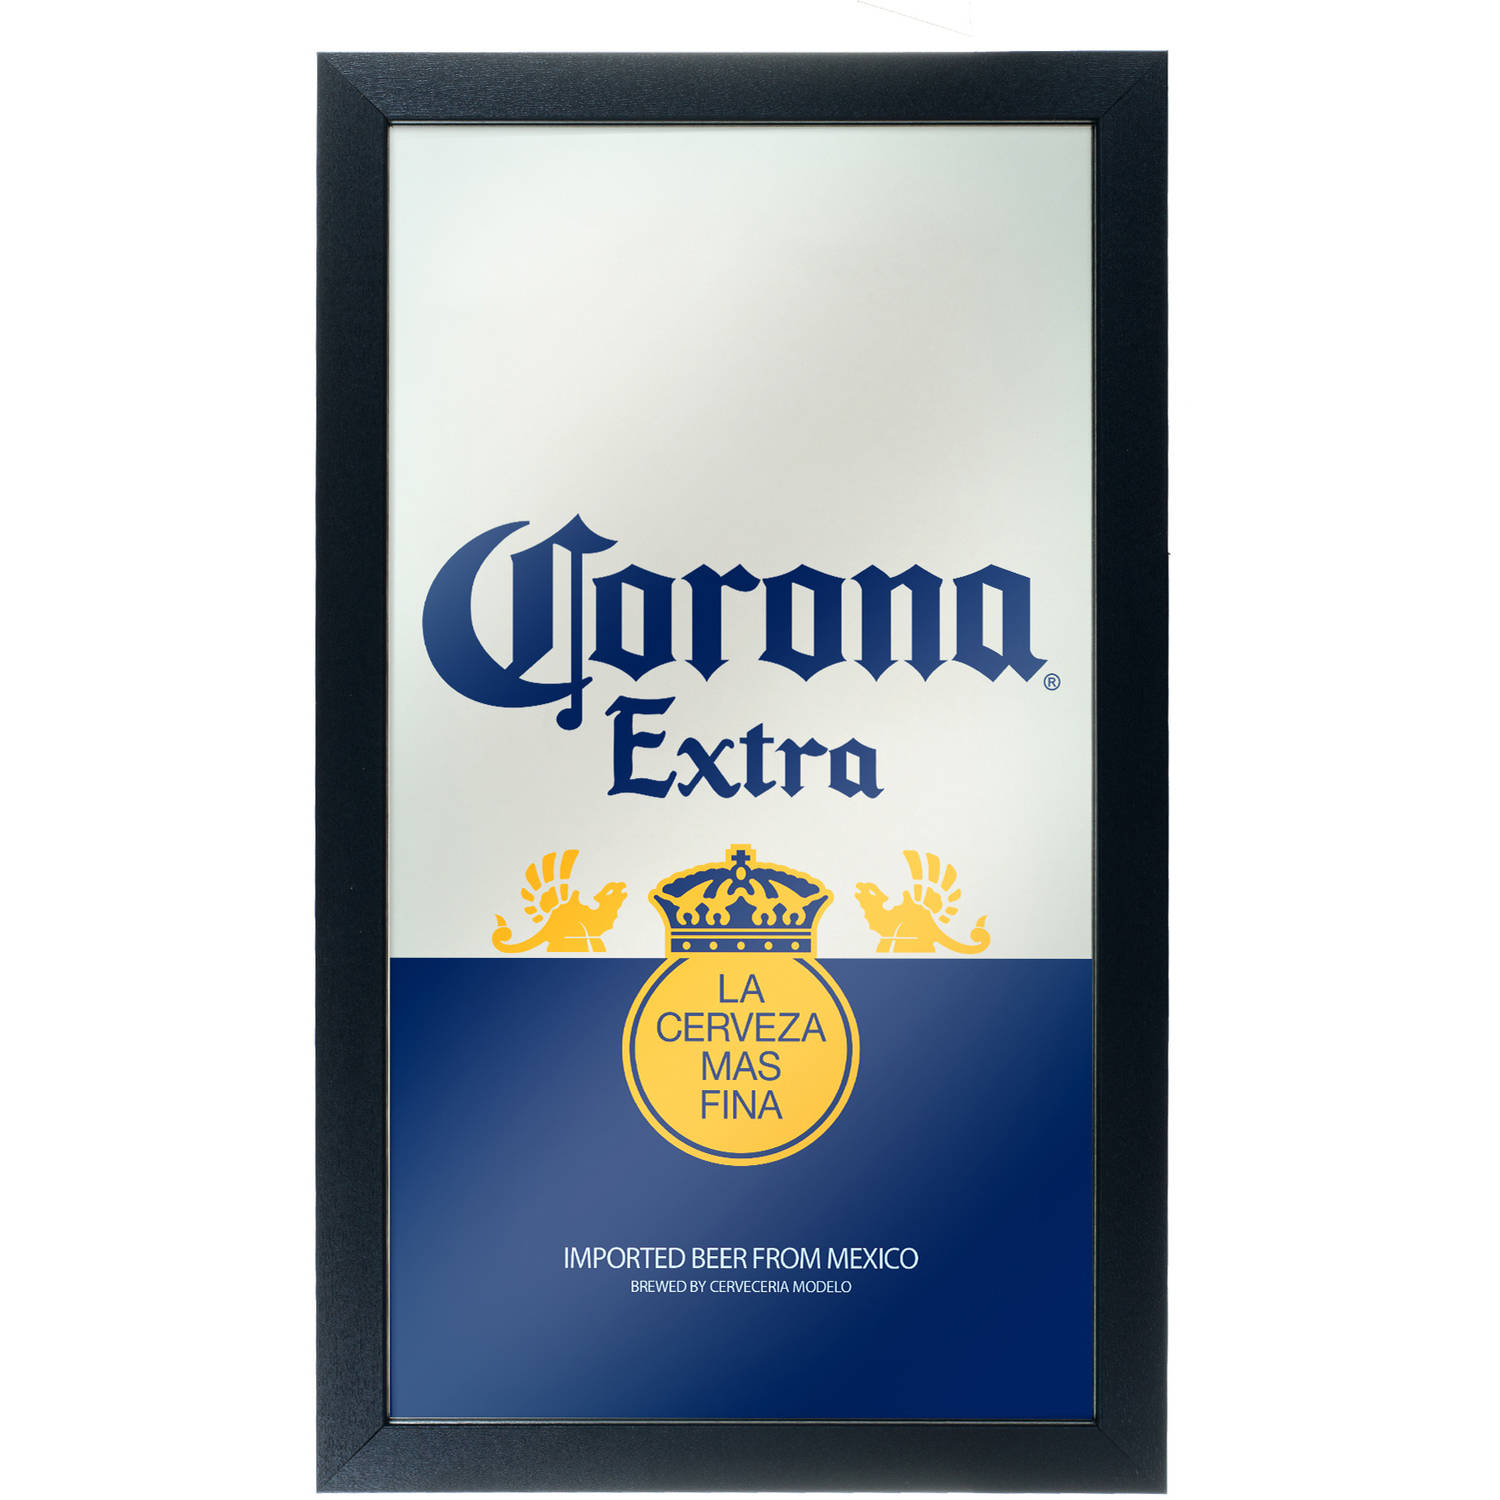 "Corona Framed Mirror Wall Plaque, 15"" x 26"", Can"